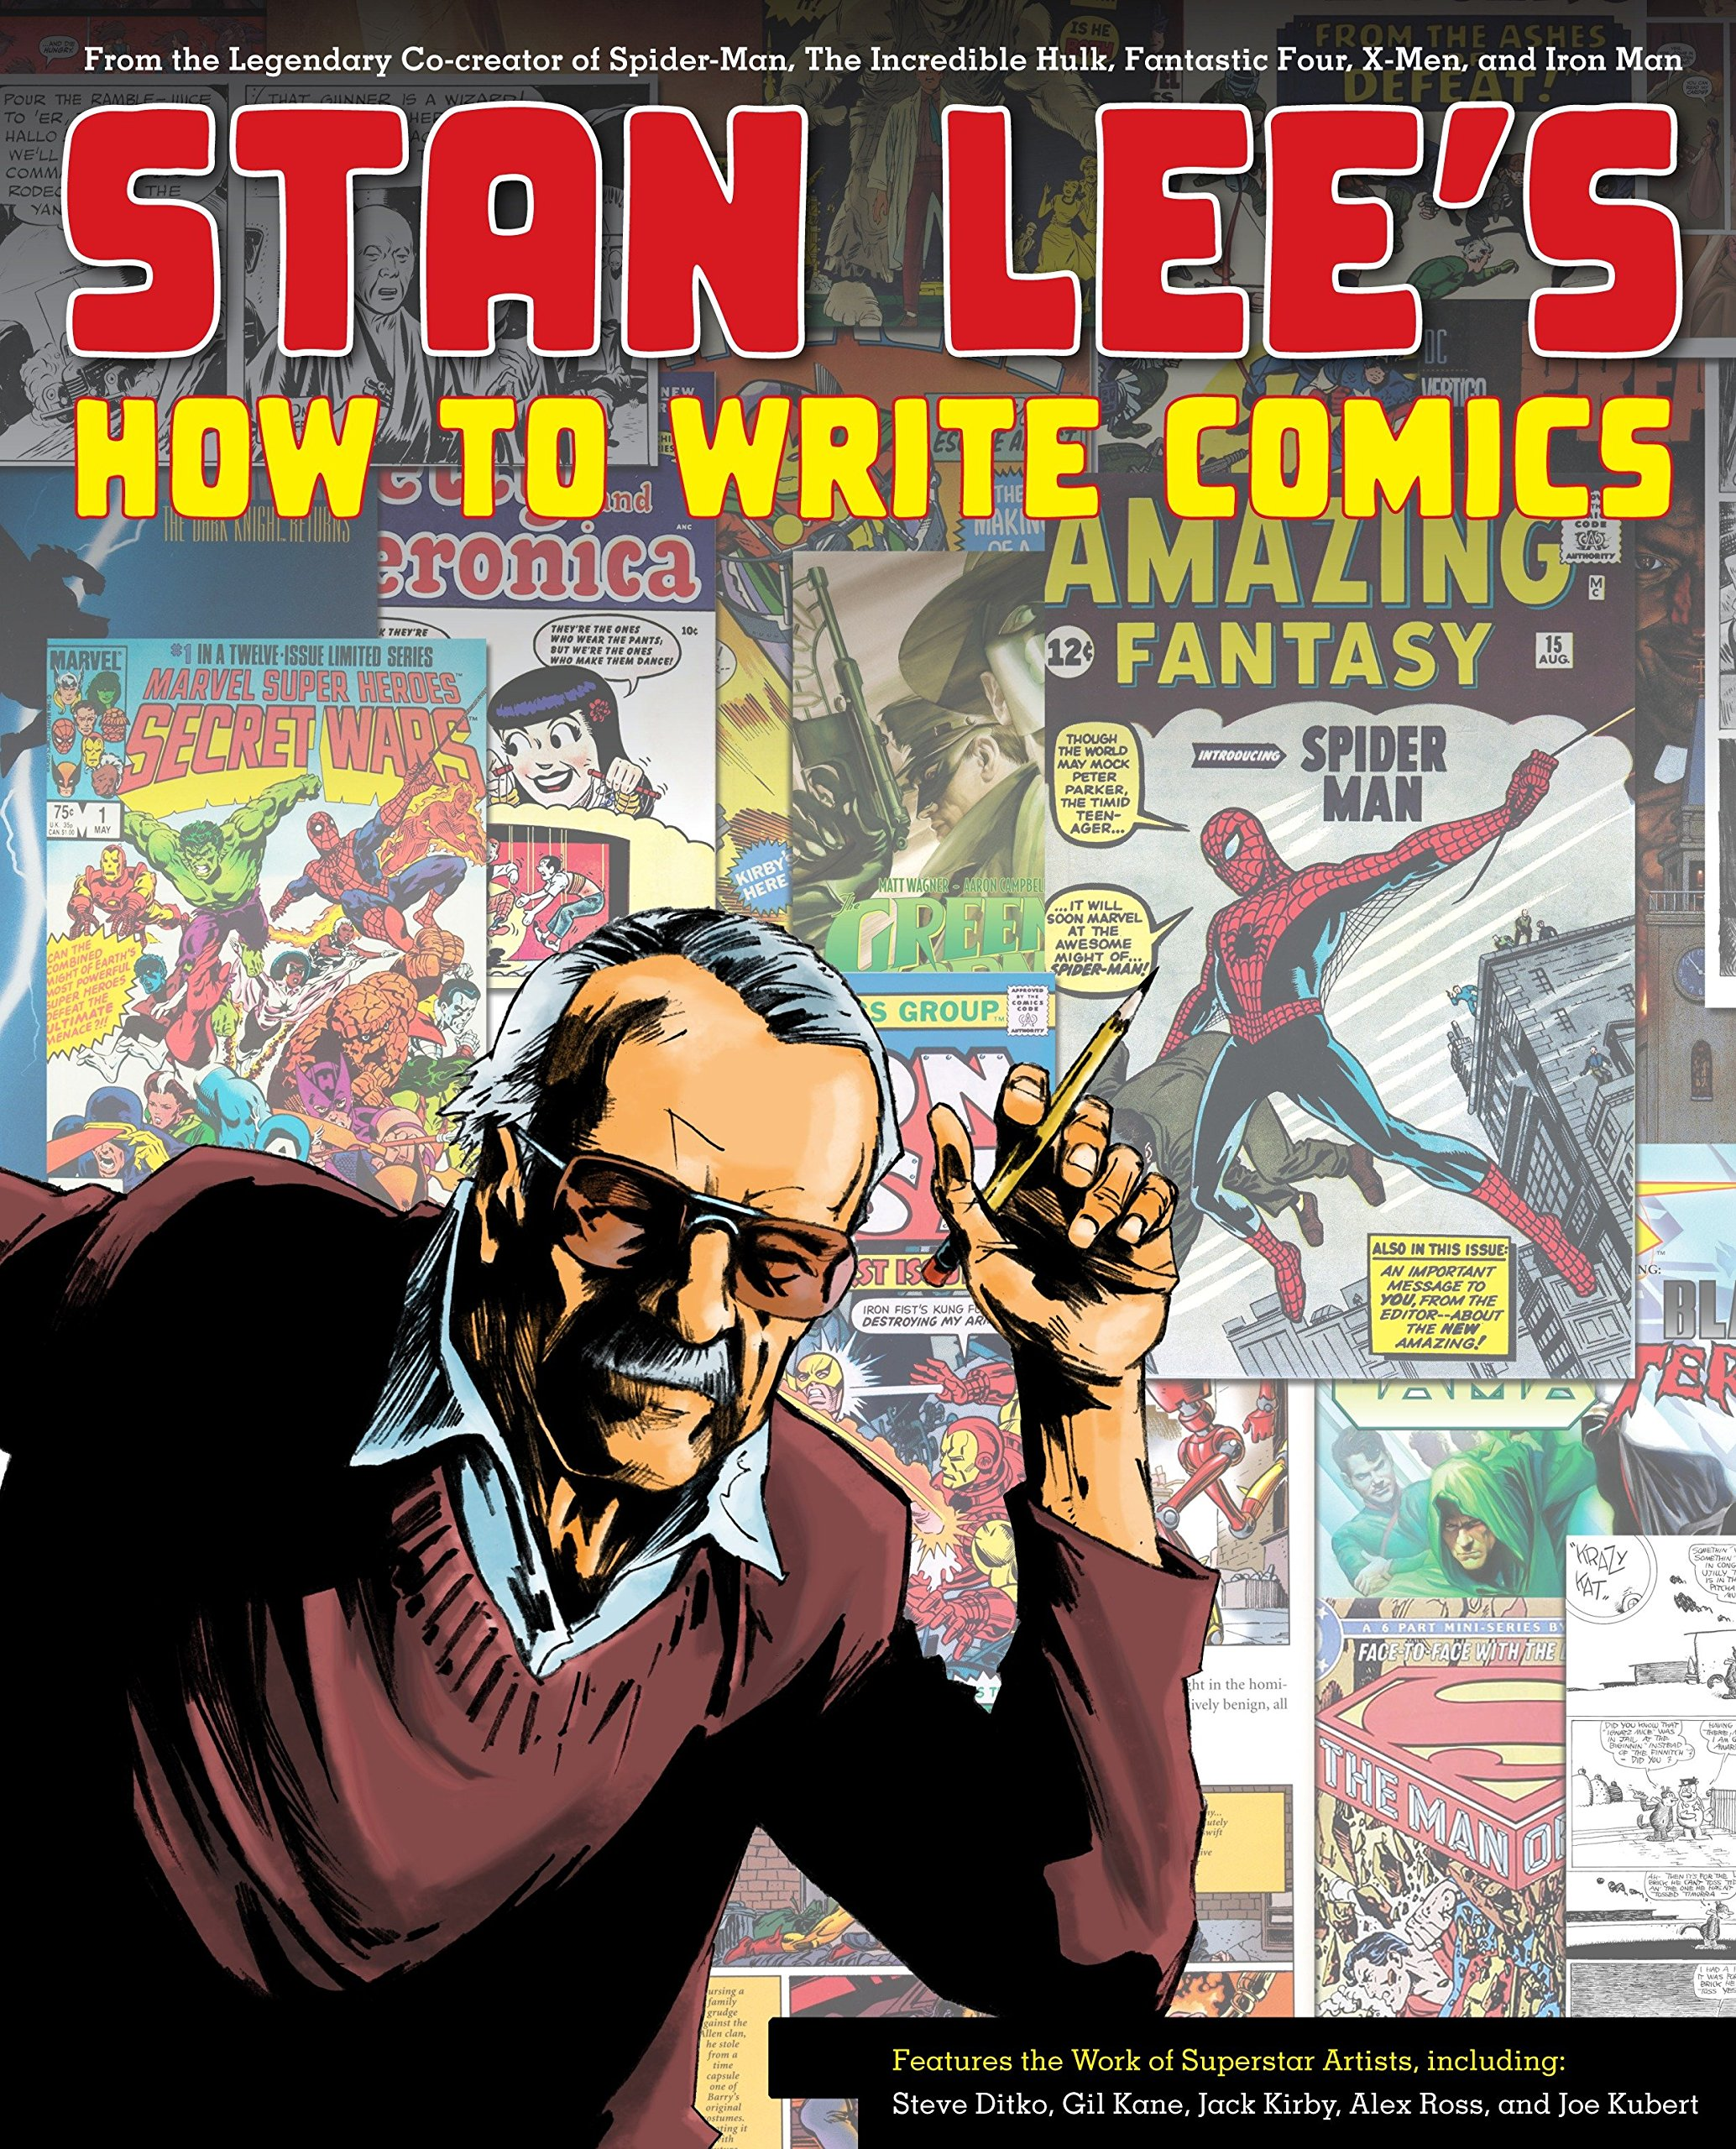 Stan Lee's How to Write Comics: From the Legendary Co-Creator of Spider-Man, the Incredible Hulk, Fantastic Four, X-Men, and Iron Man by imusti